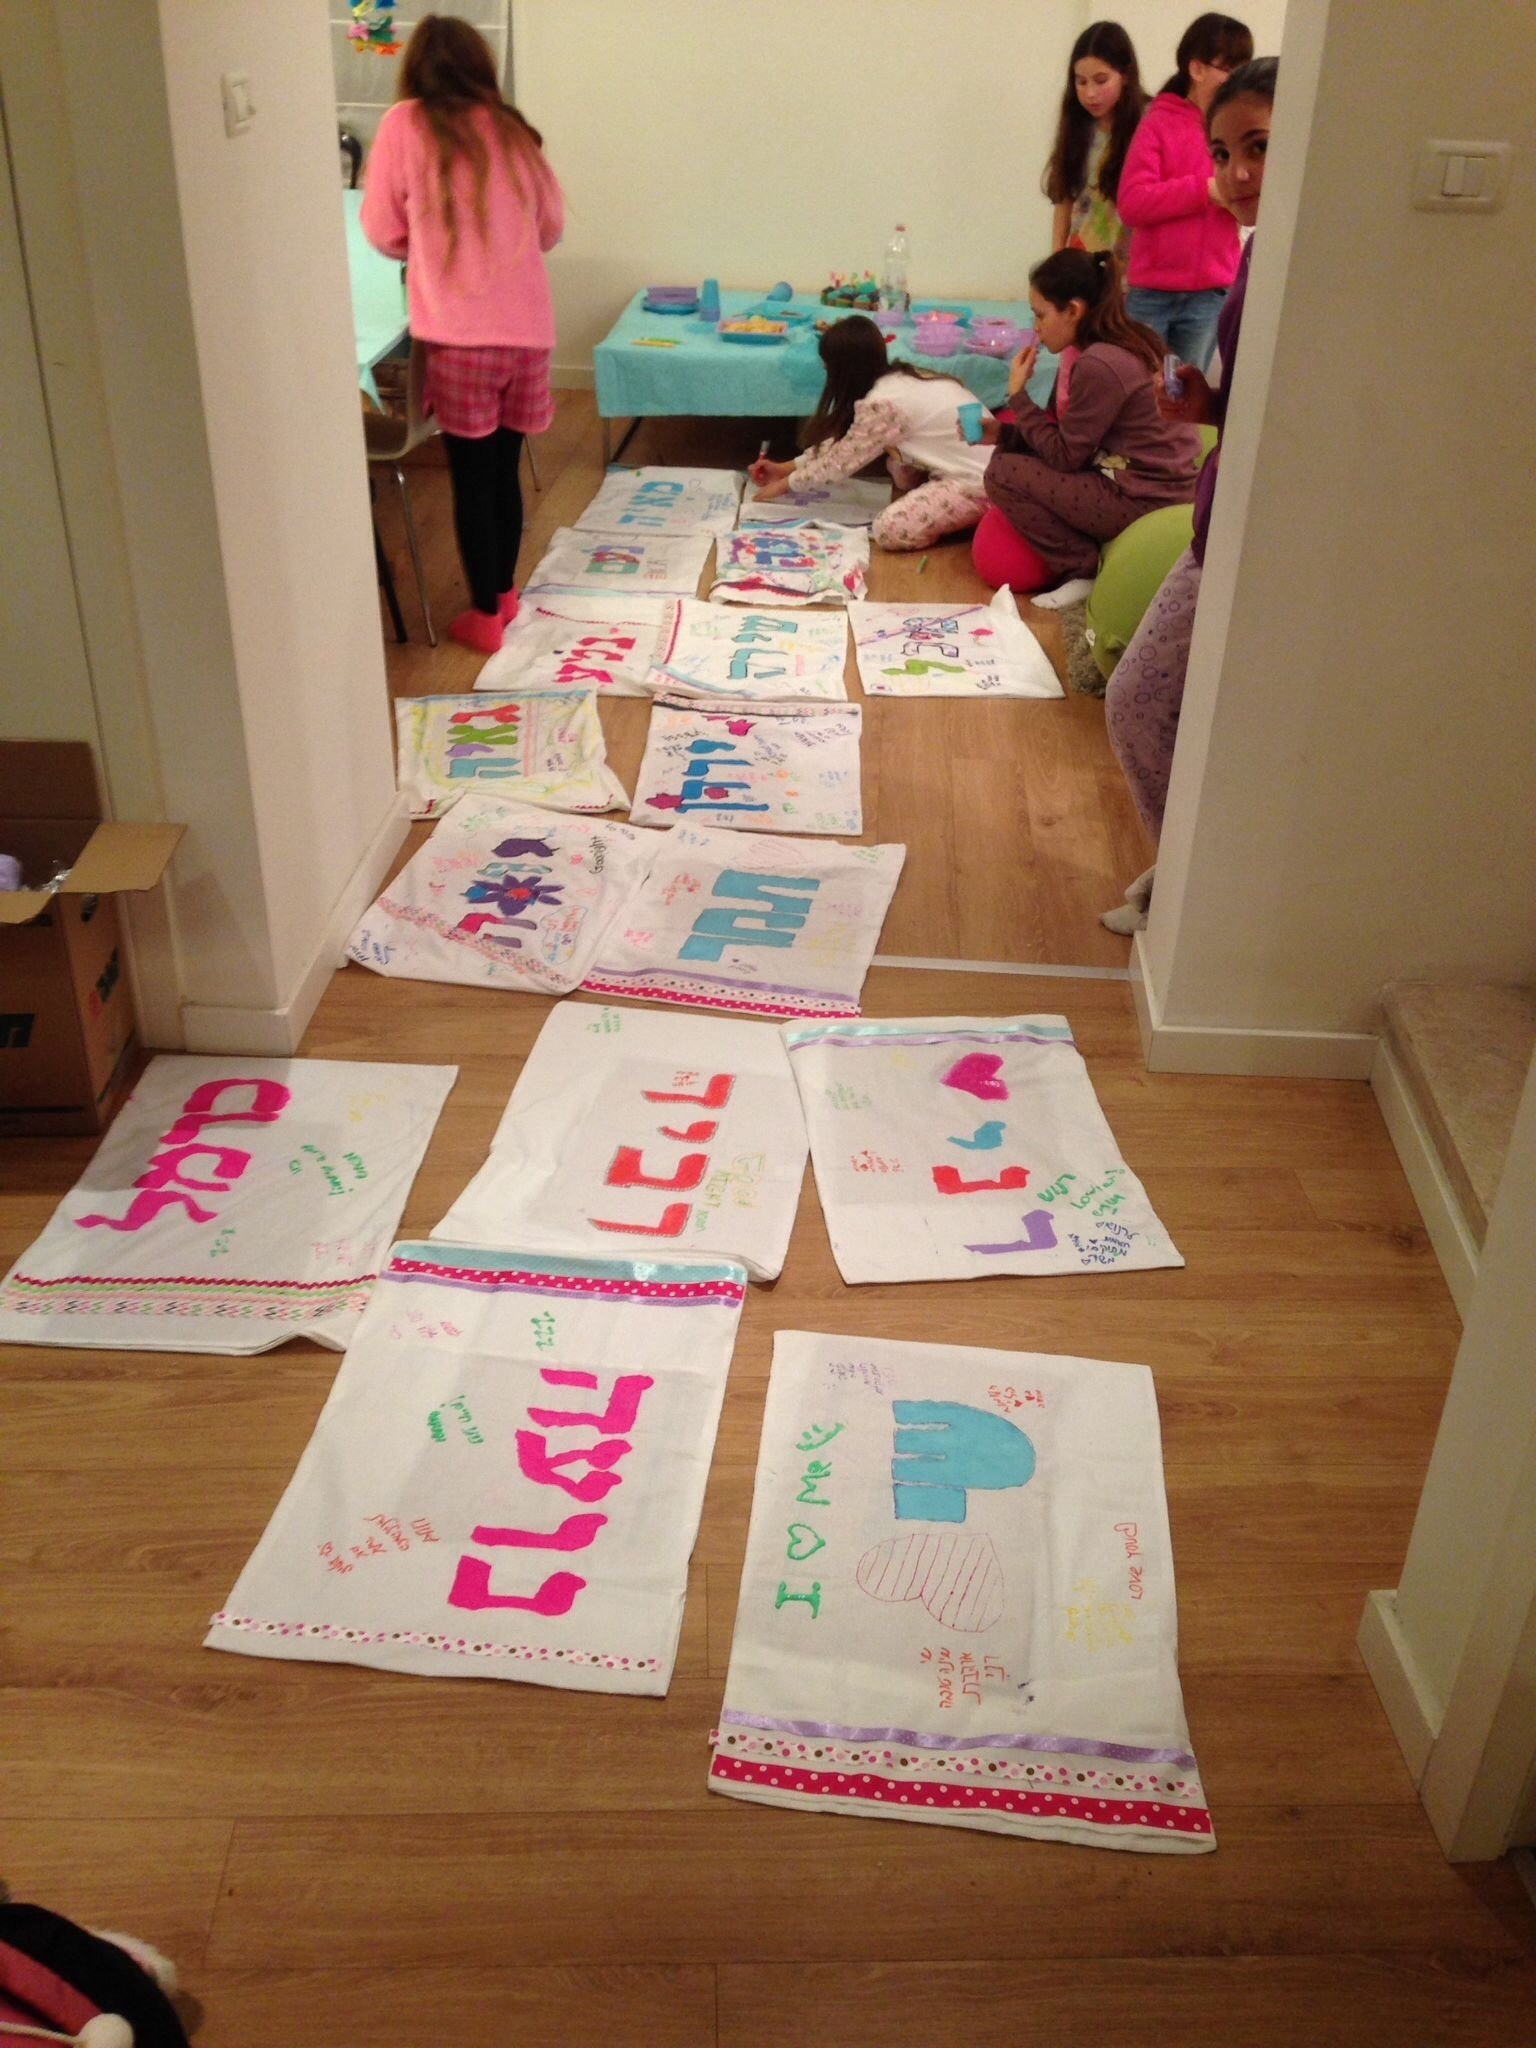 10 Cute Sleepover Ideas For 12 Year Olds pillowcase crafts at 11 year olds pyjama party kids parties 2020